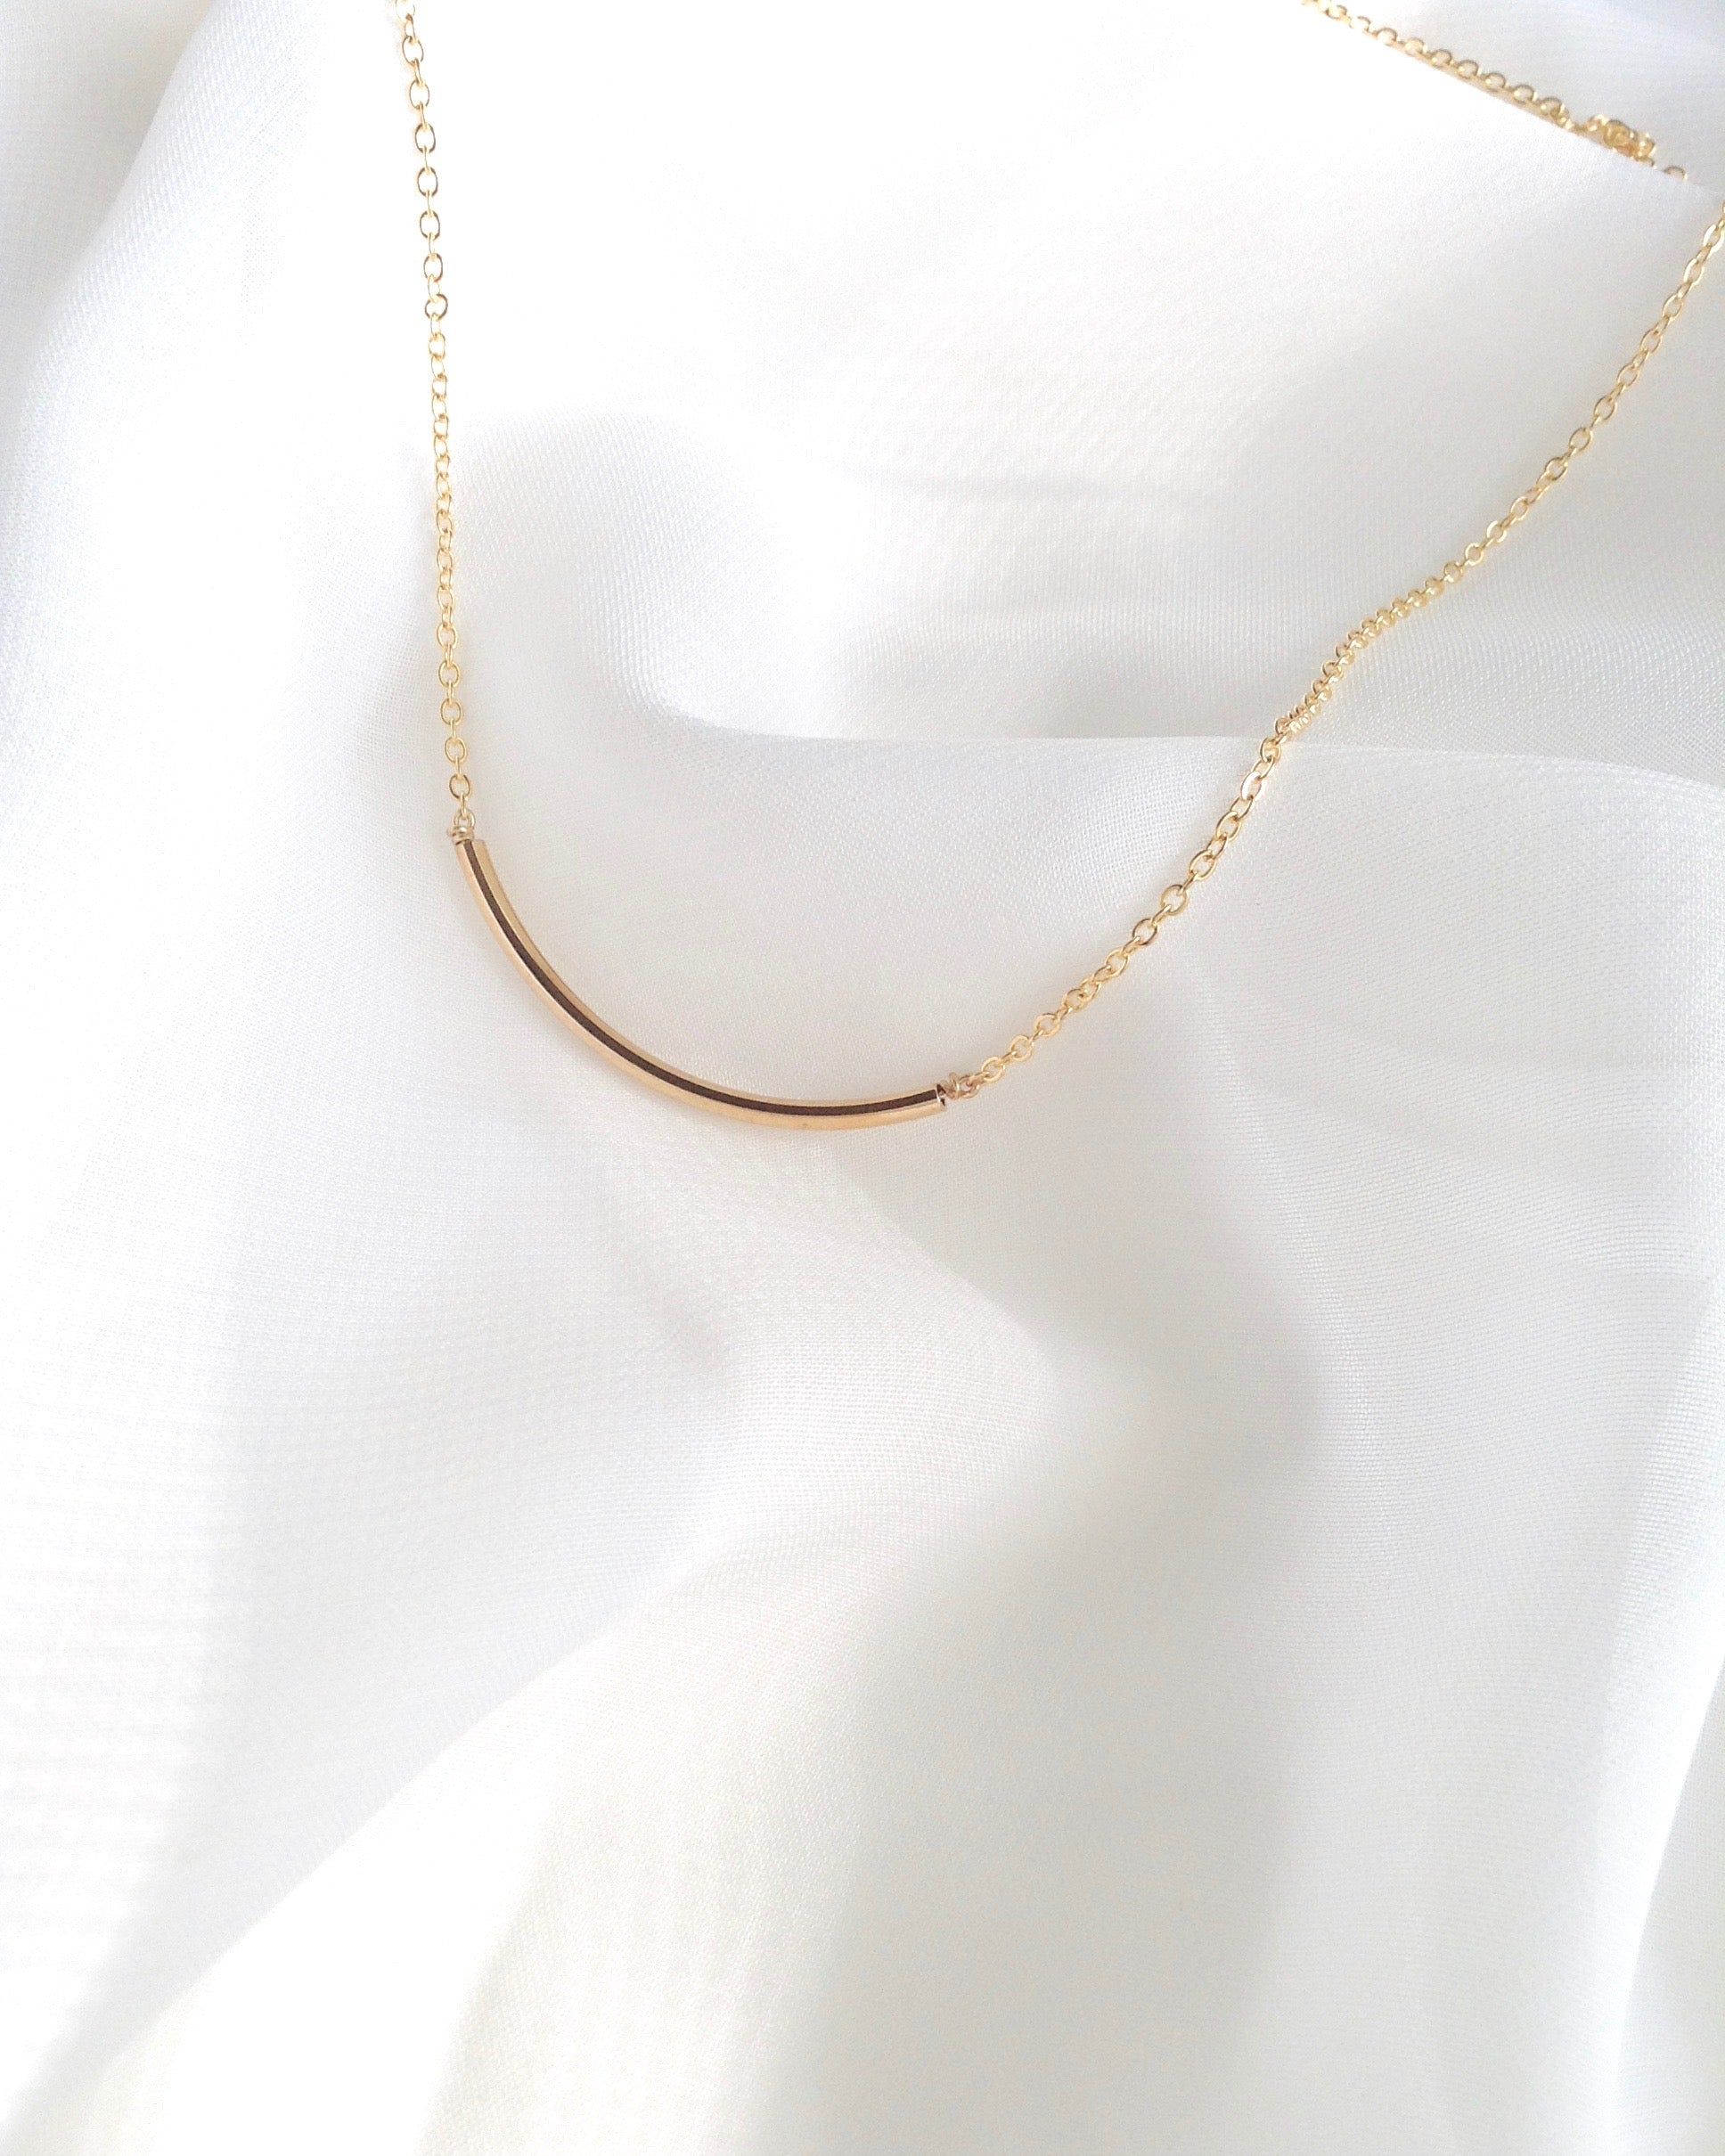 Curved Bar Simple Delicate Necklace in Gold Filled or Sterling Silver | IB Jewelry